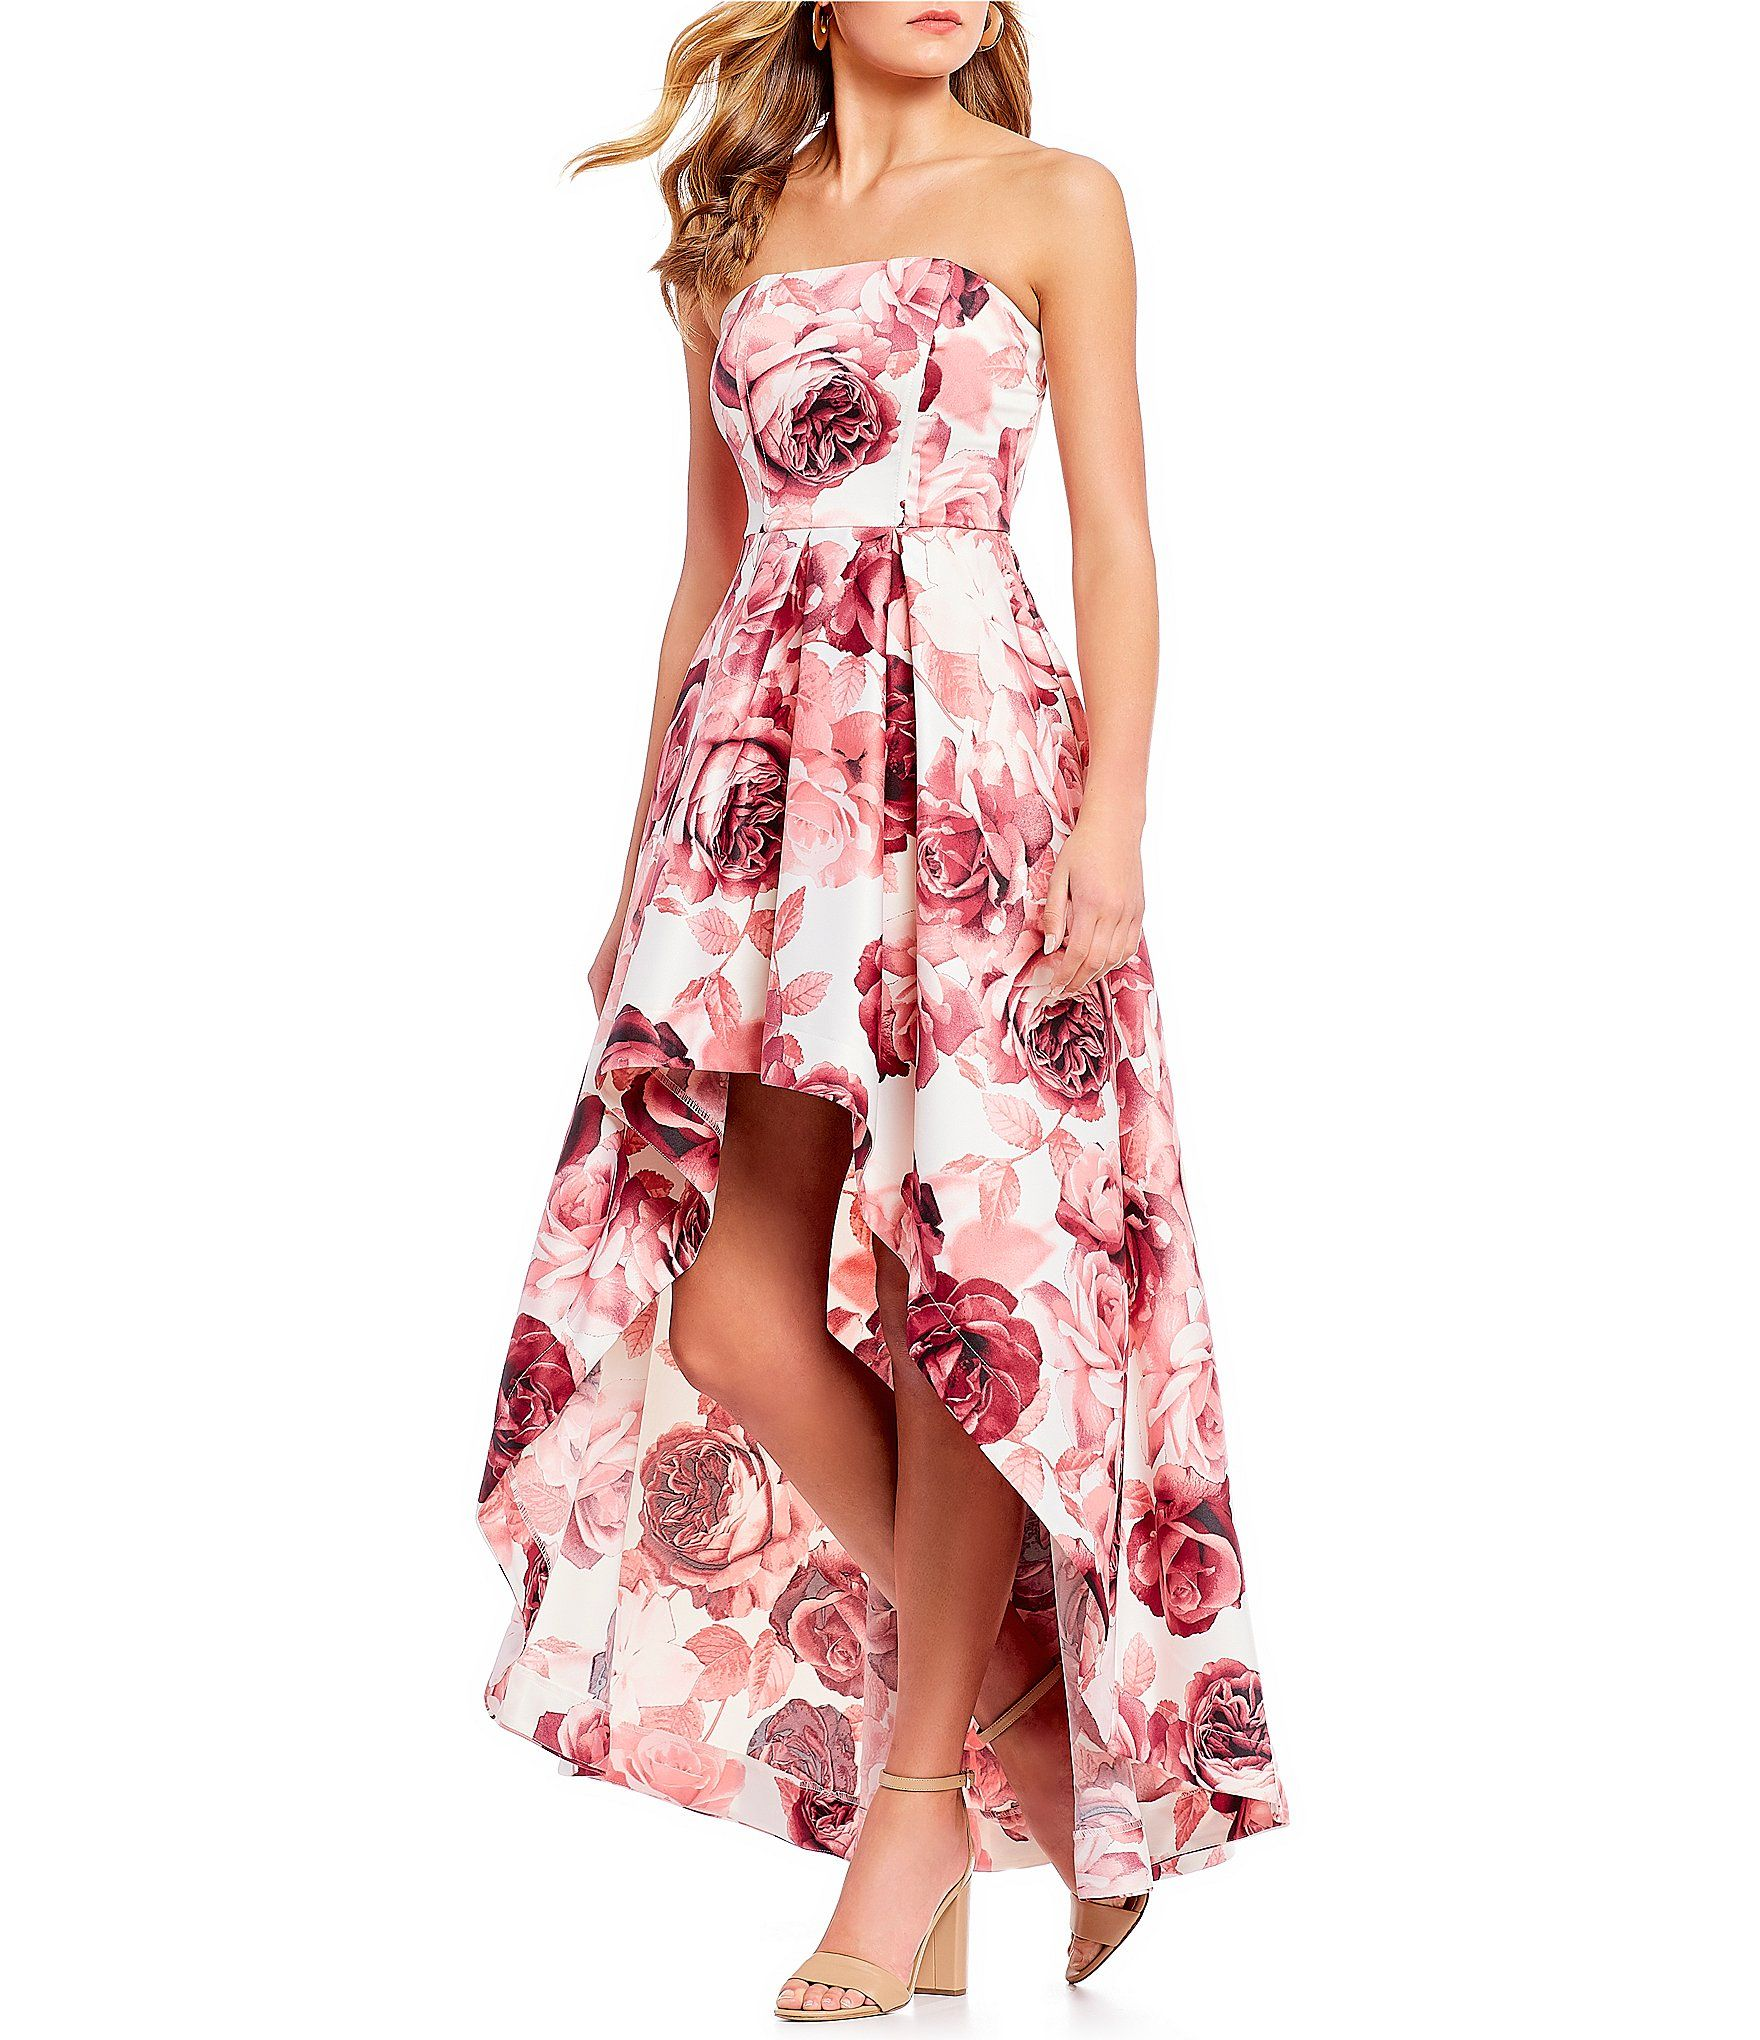 92cc8c3fd Shop for Xtraordinary Strapless Floral Print Long High-Low Dress at  Dillards.com. Visit Dillards.com to find clothing, accessories, shoes,  cosmetics & more.